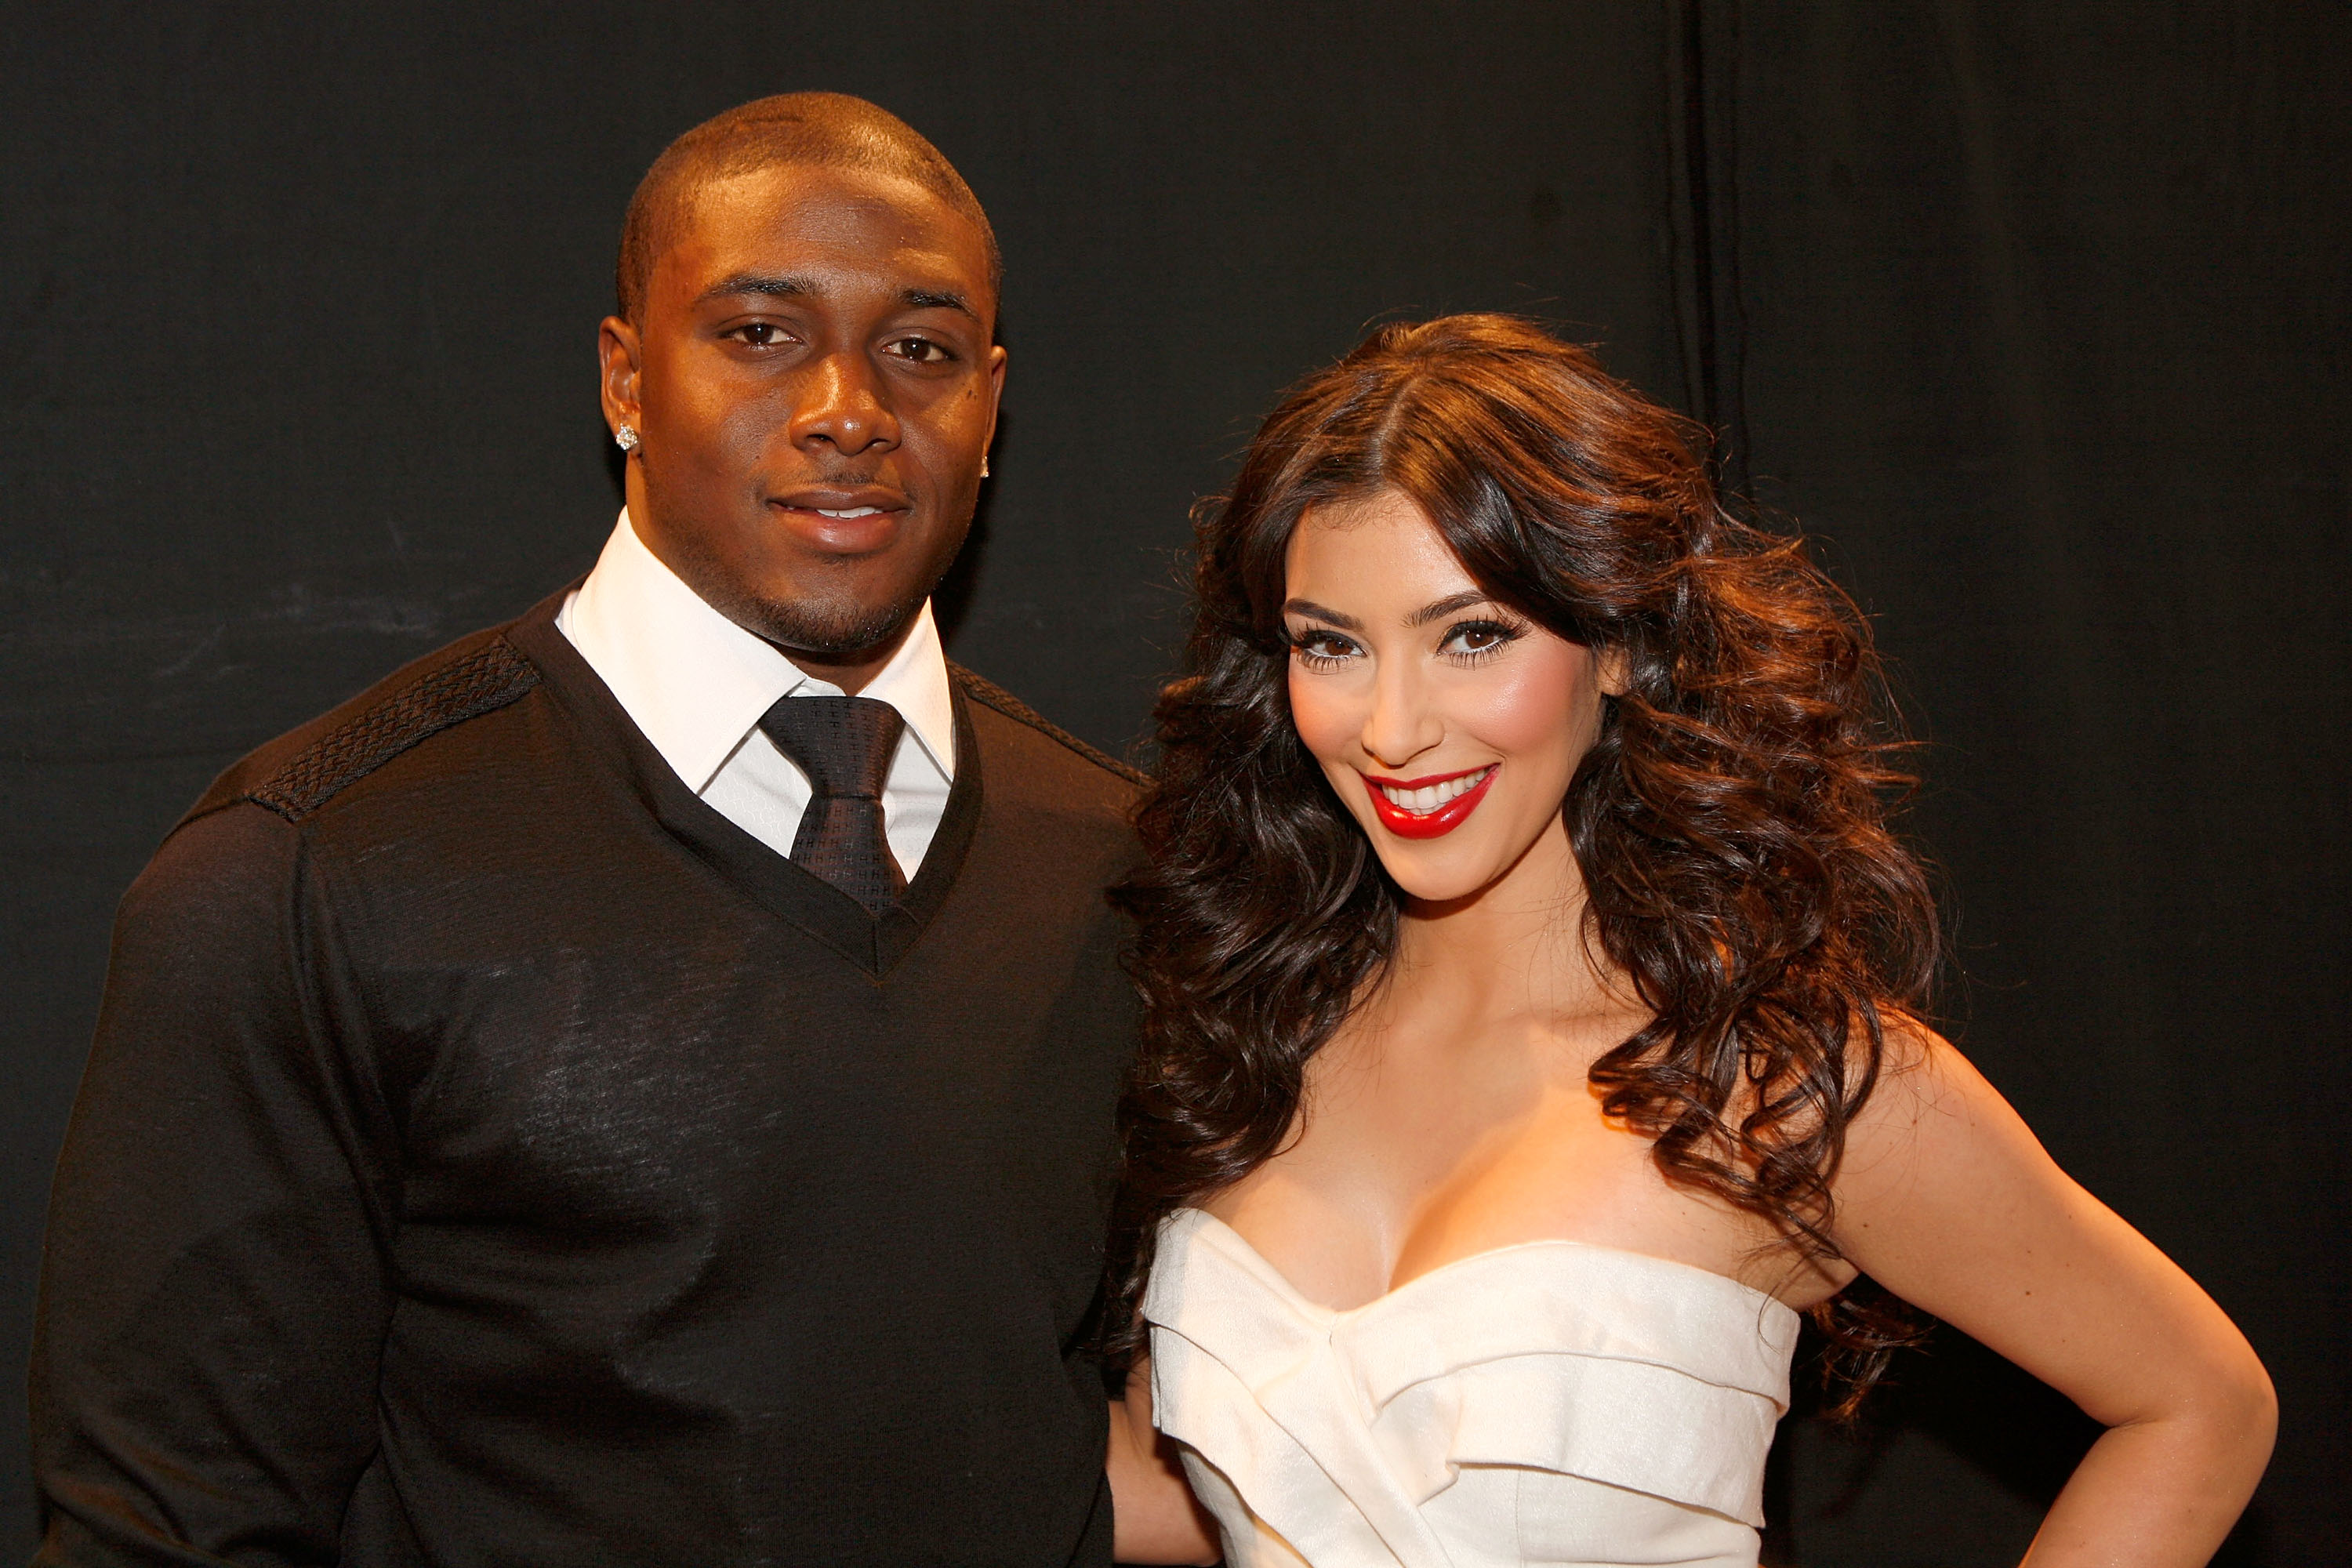 reggie bush kim kardashian photo